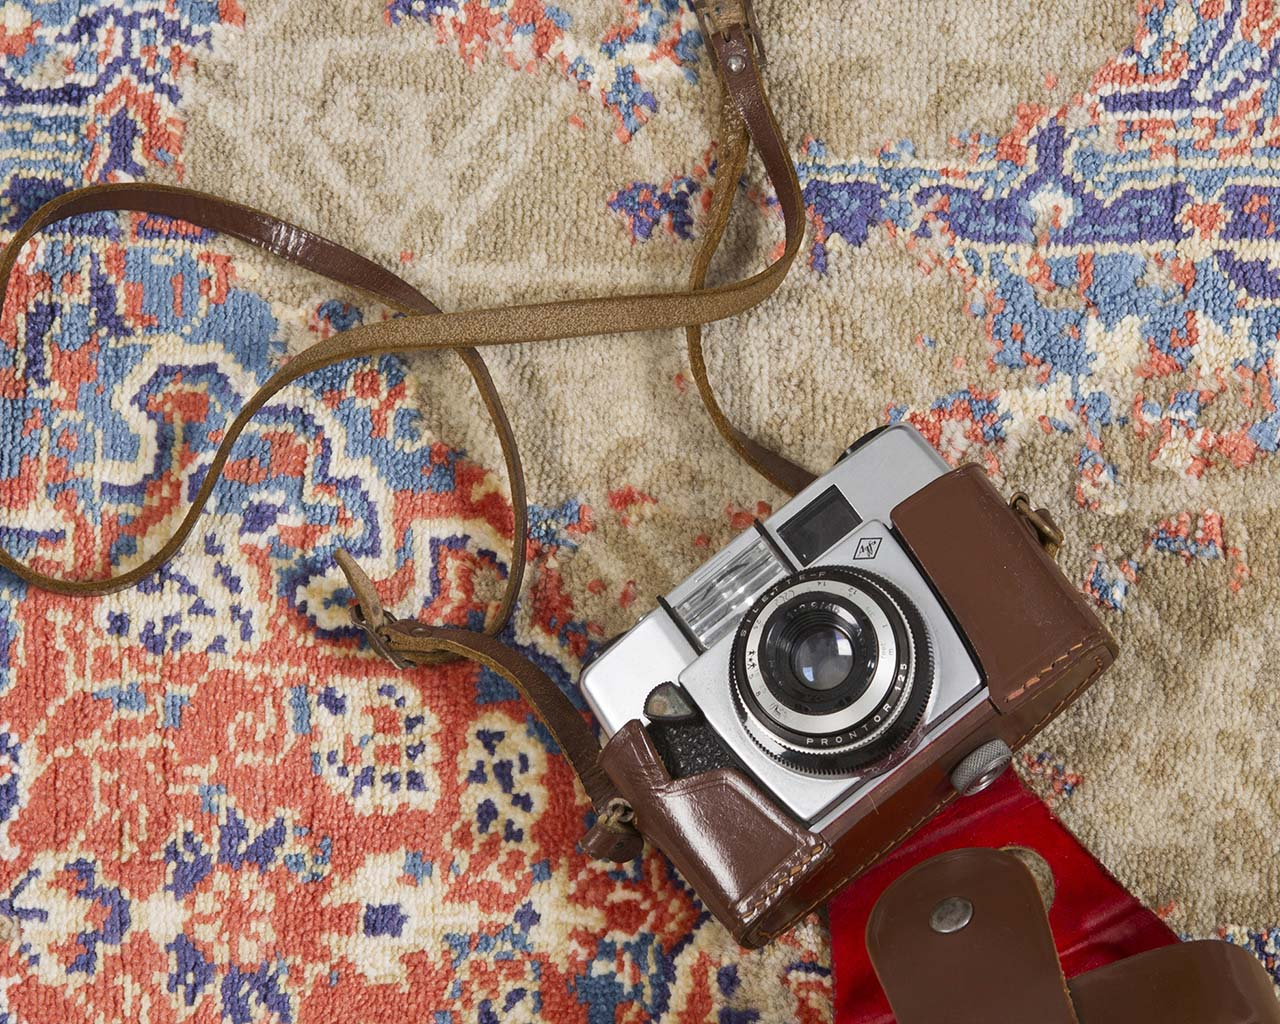 handmade red camera rugs for kids rooms